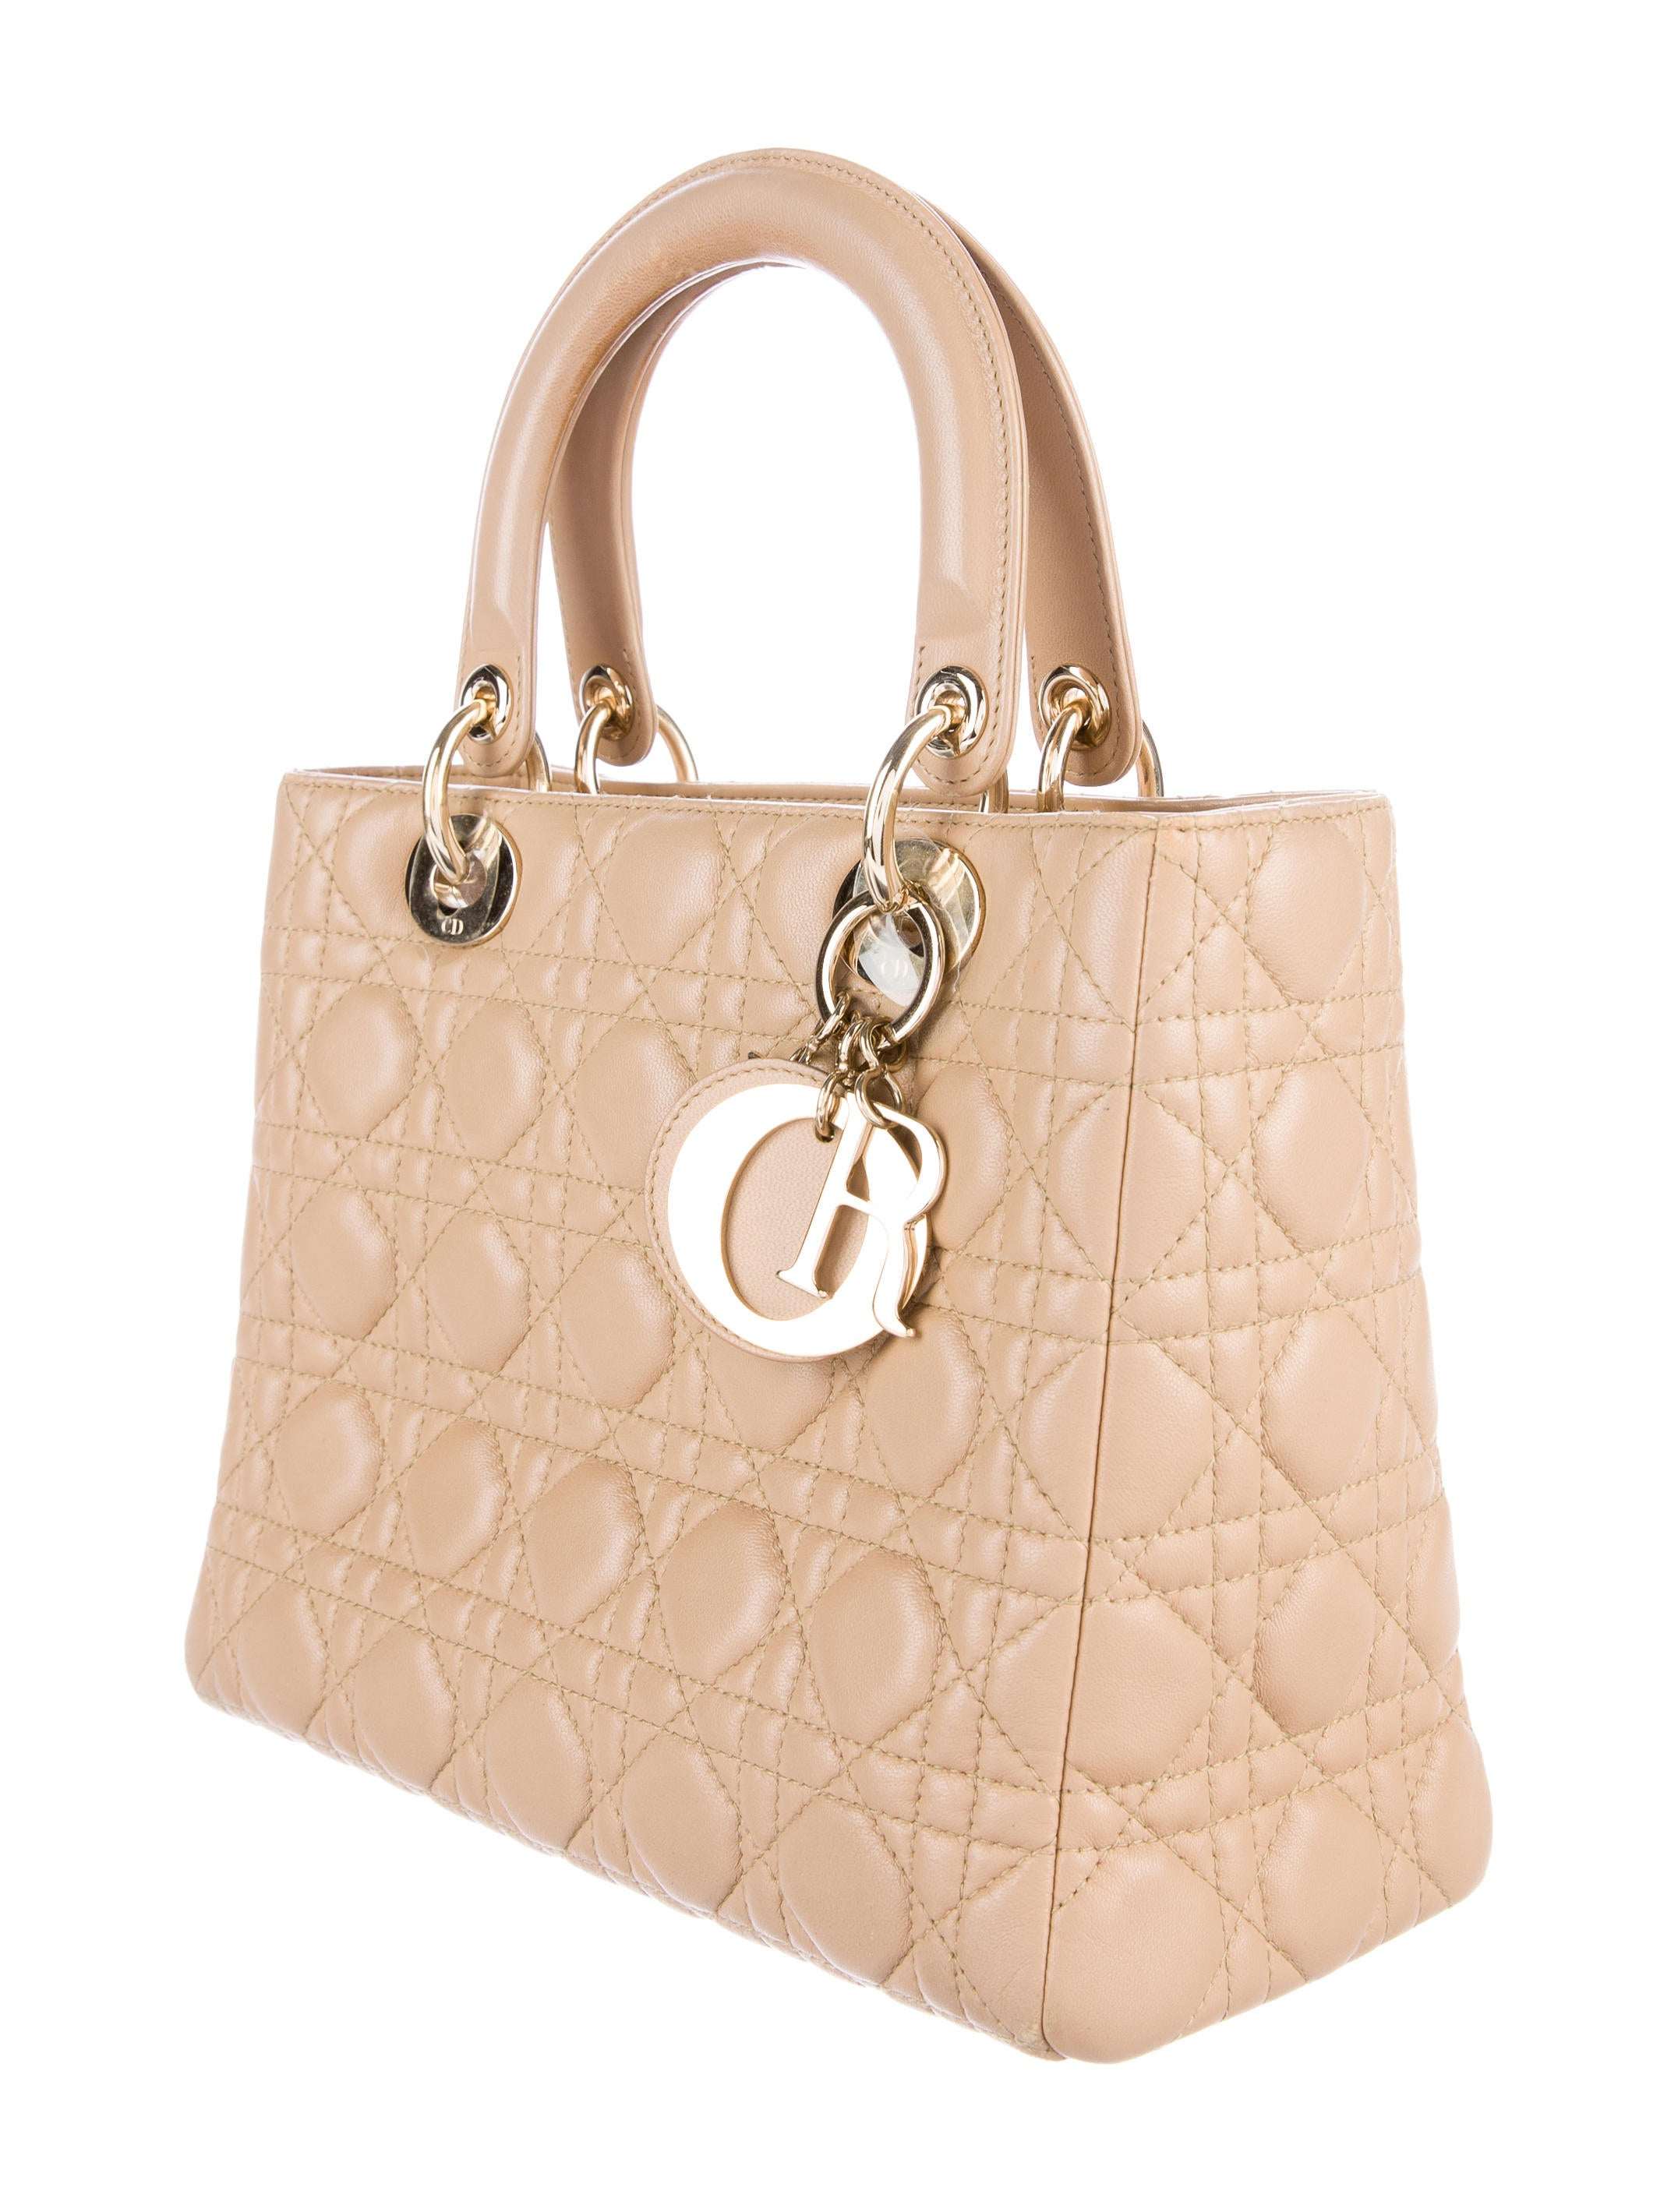 The bag lady purses - Compare Prices & Store Ratings at palmmetrf1.gae Selection · Big Deals · Comparison Shopping · Top Brands.